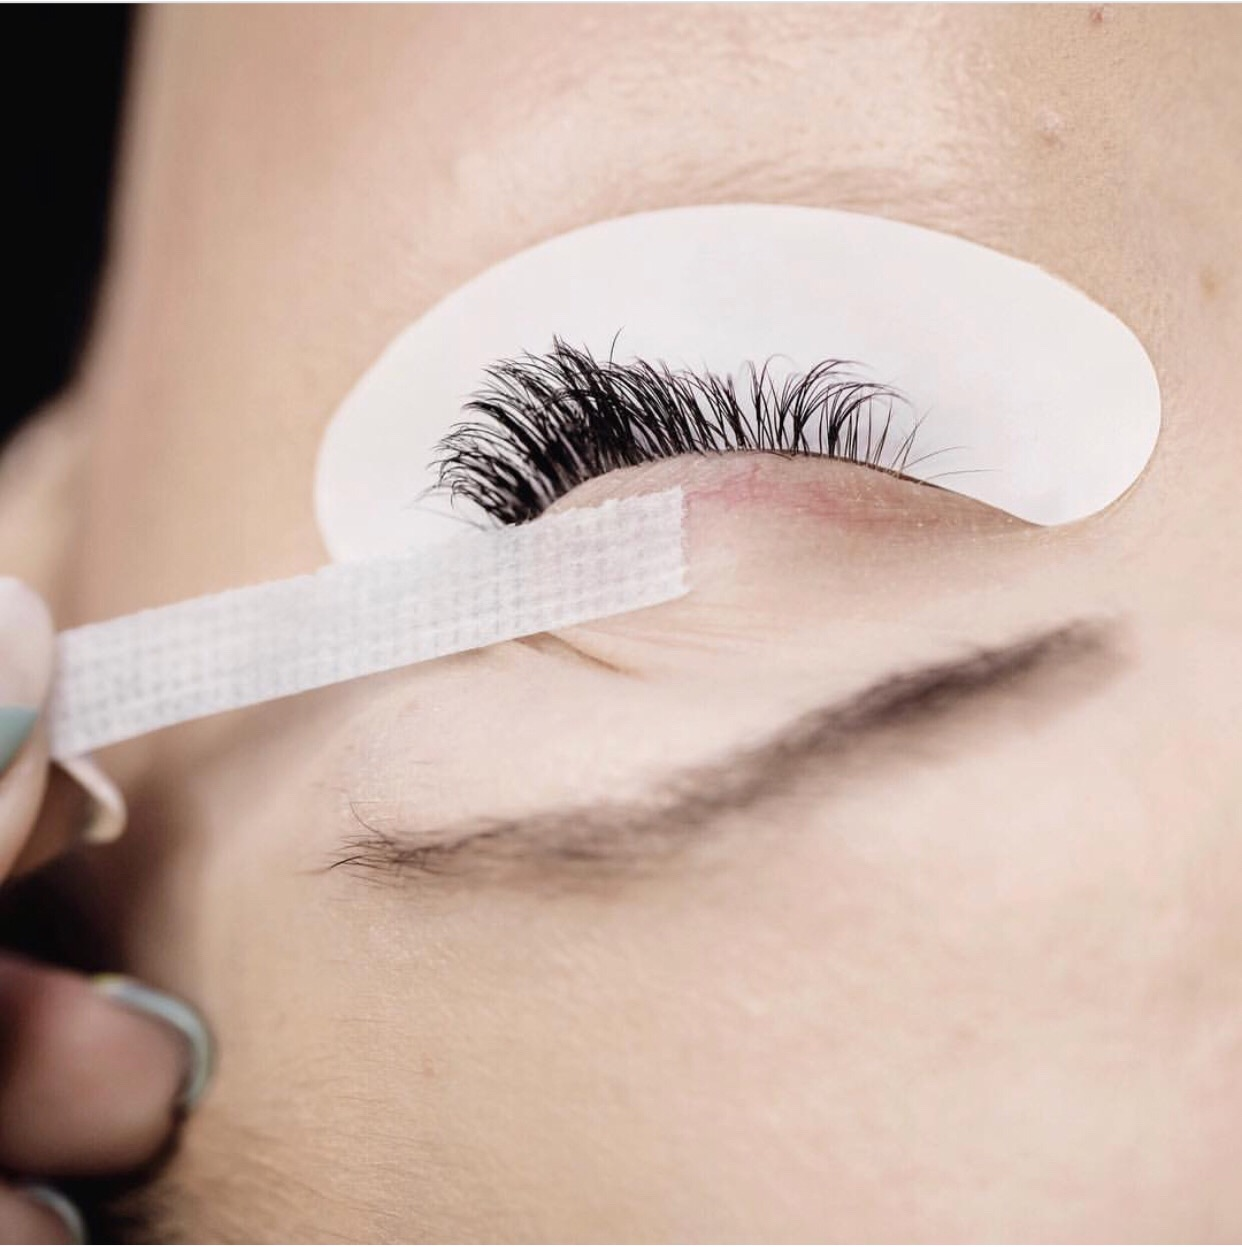 LASH TIPS - FOR THE INNER CORNER